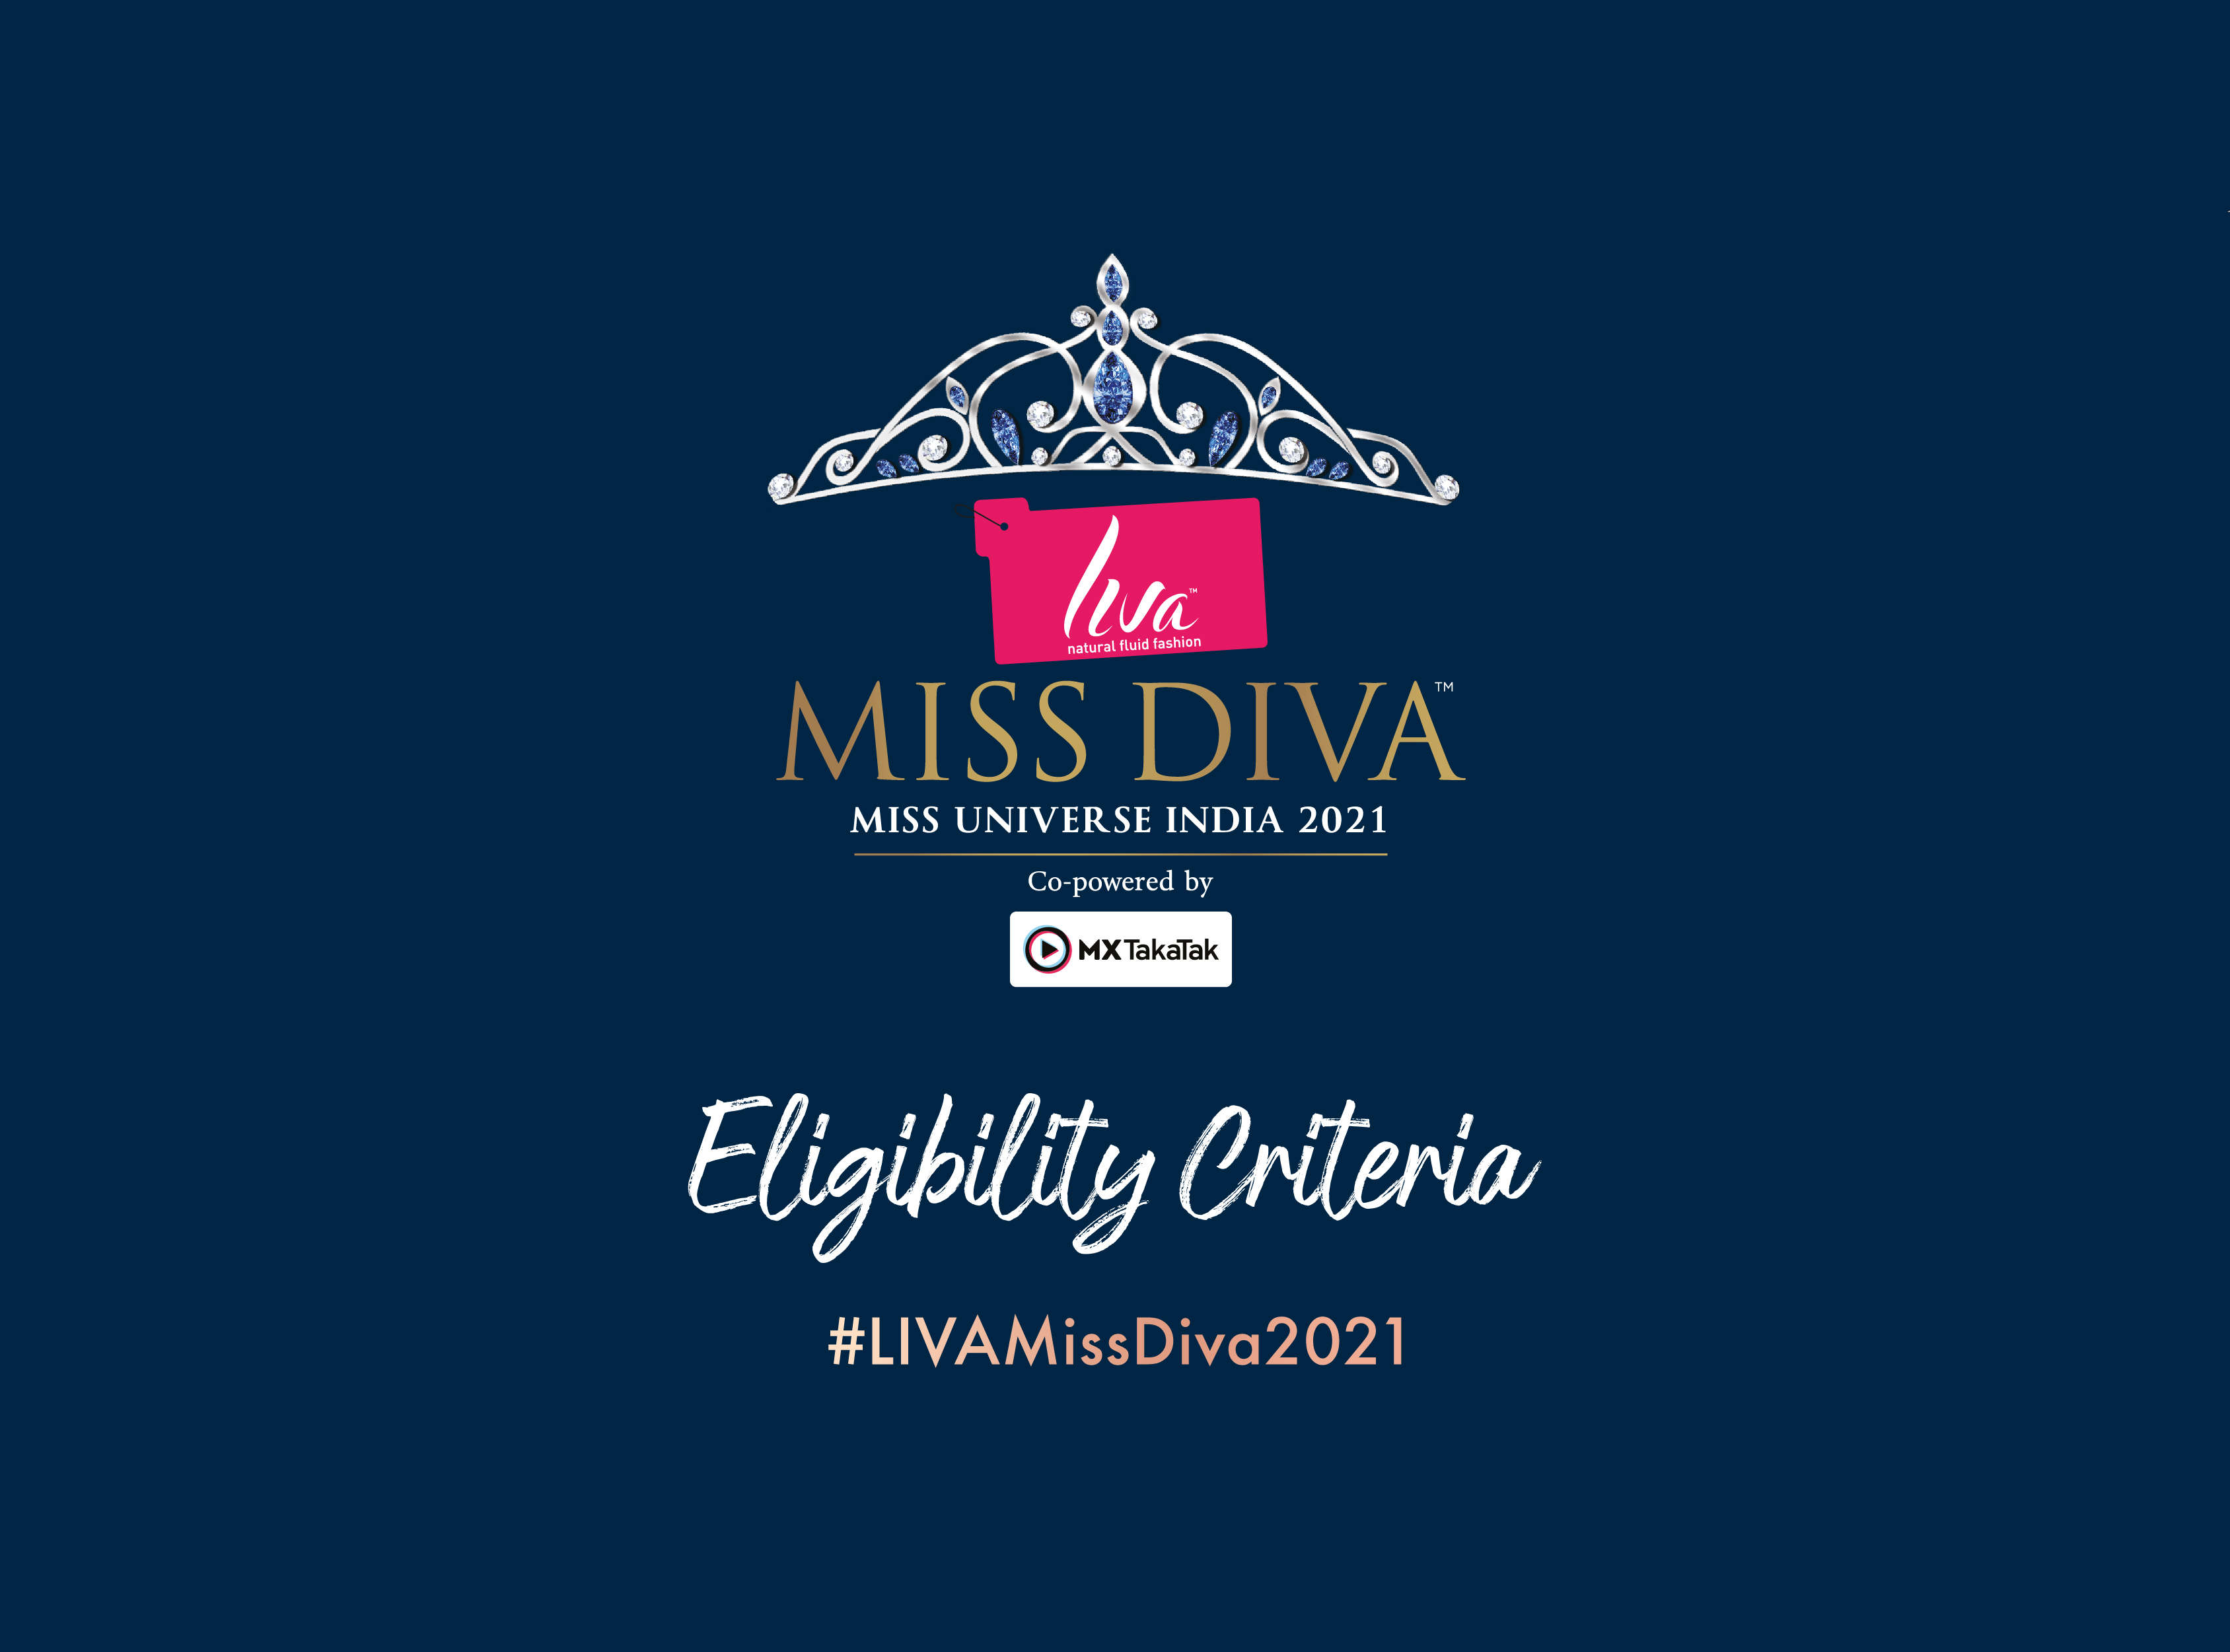 Check out the eligibility criteria of LIVA Miss Diva 2021